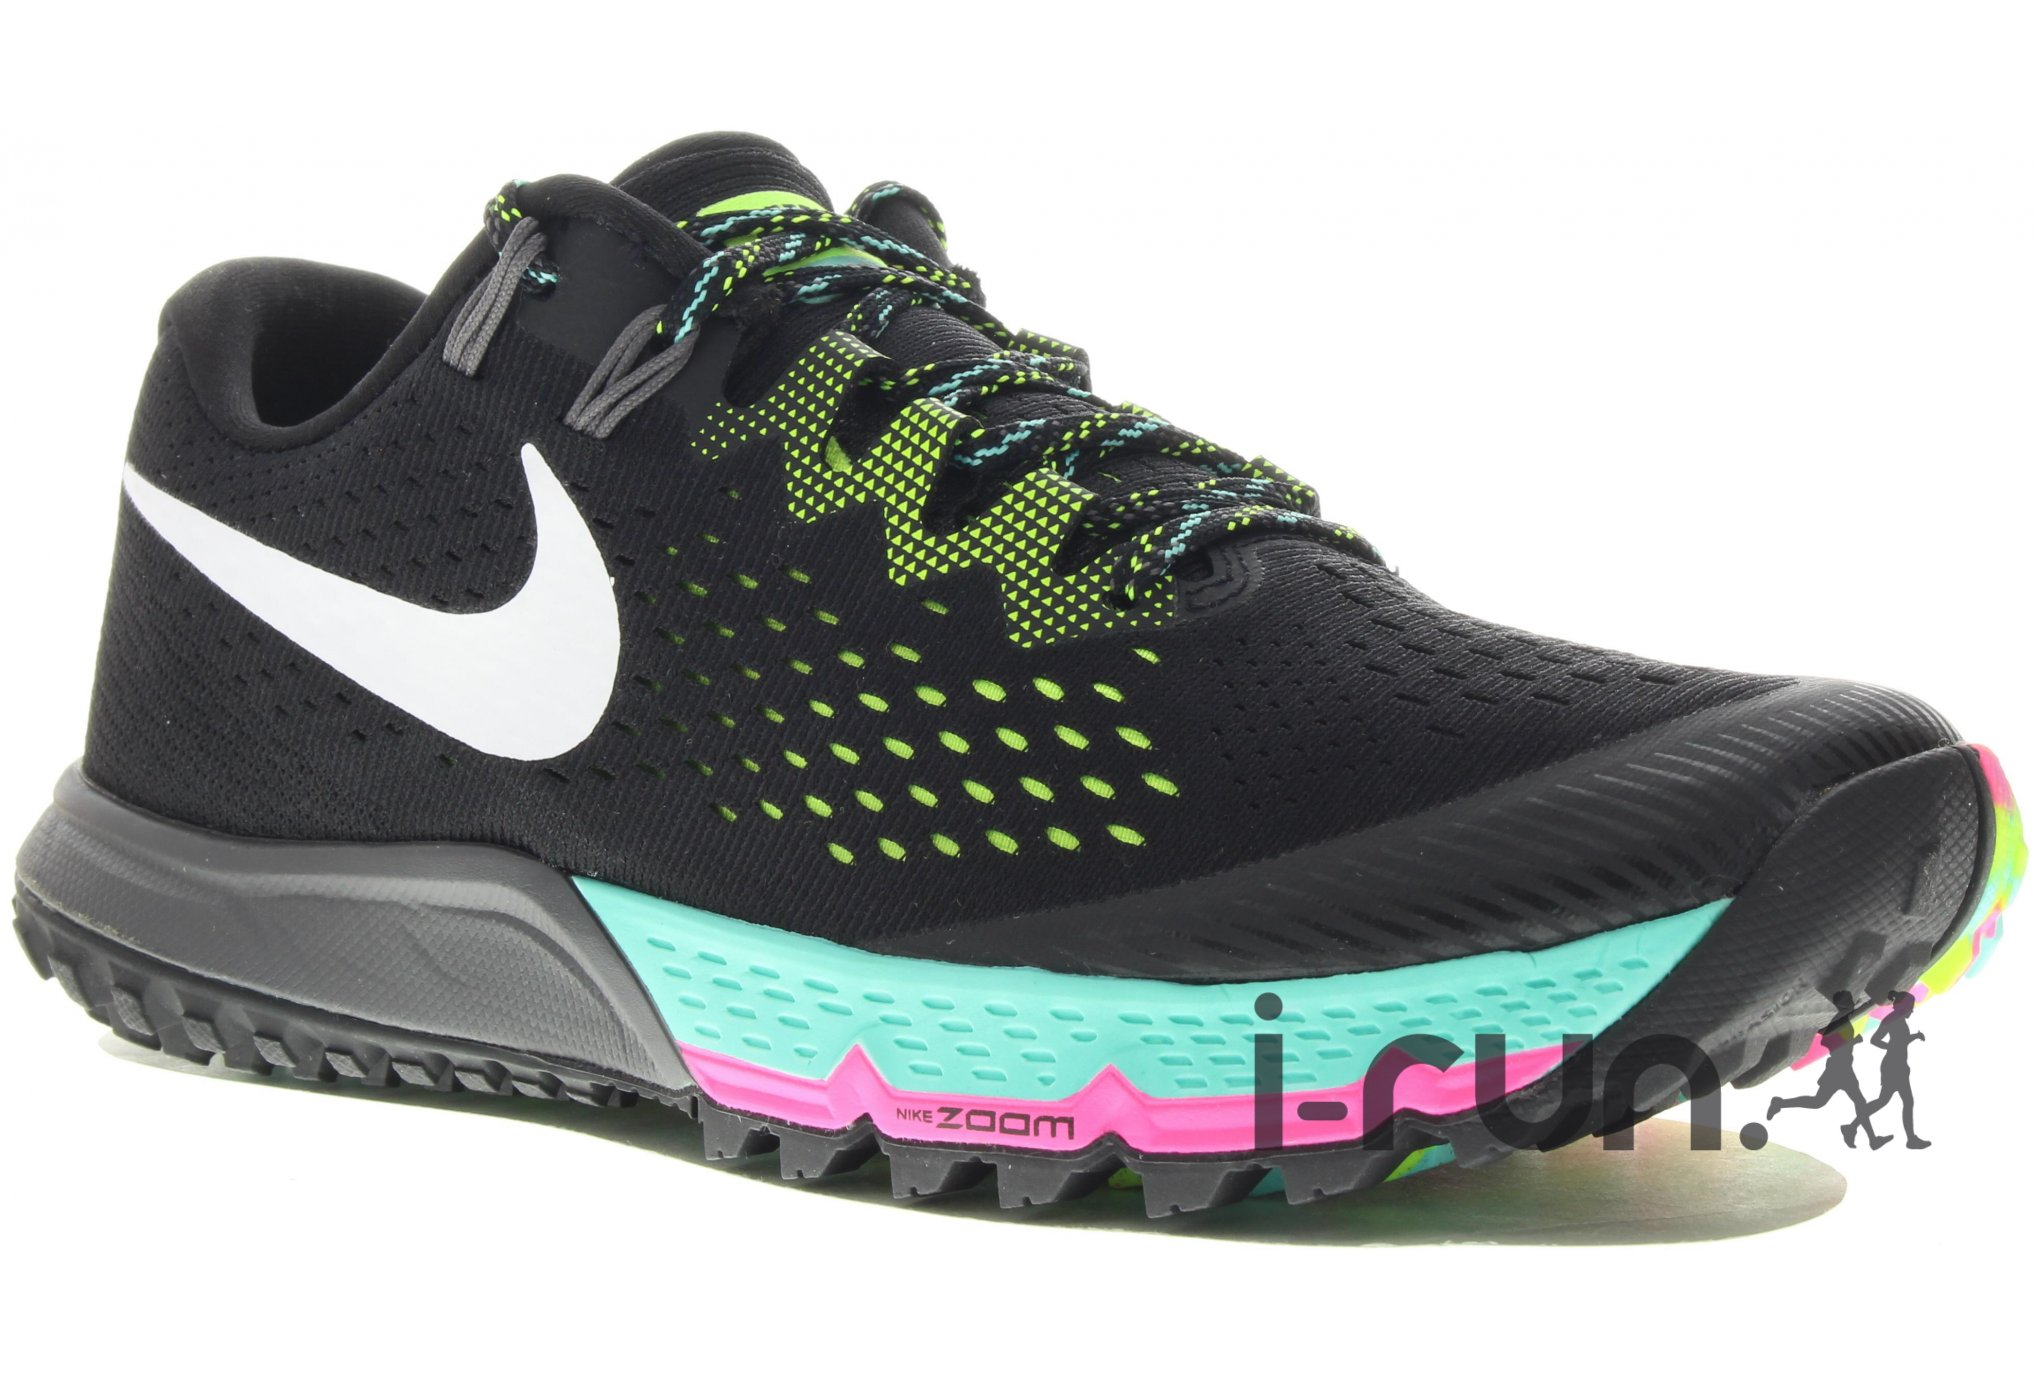 Nike Air Zoom Terra Kiger 4 W Chaussures running femme